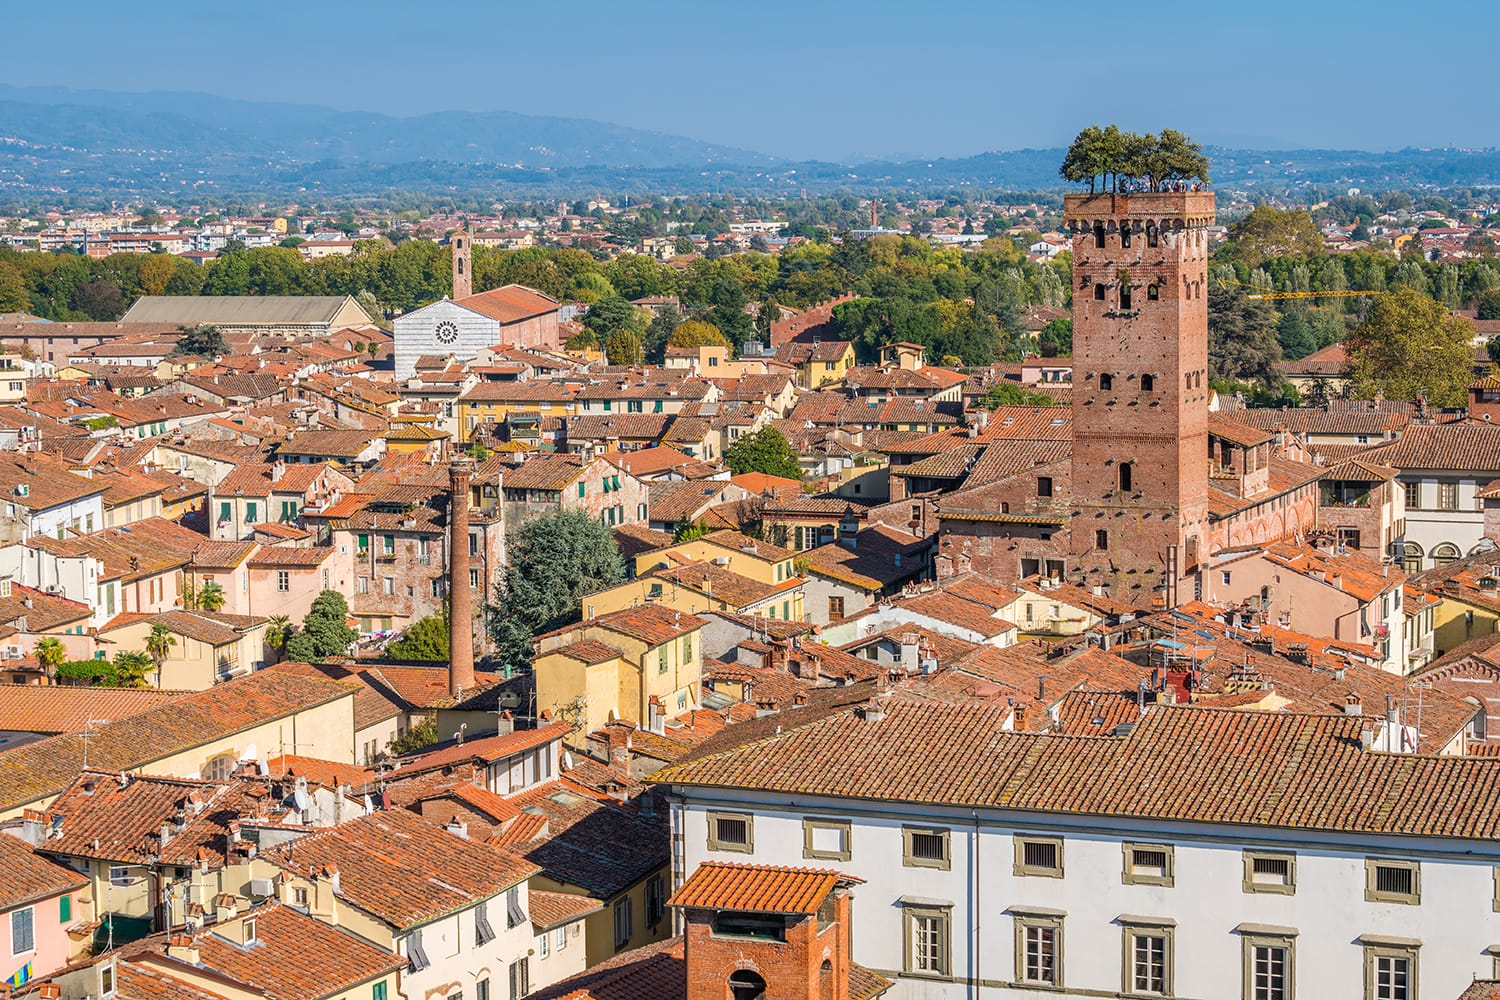 Panoramic view in Lucca, with the famous Guinigi Tower. Tuscany, Italy.